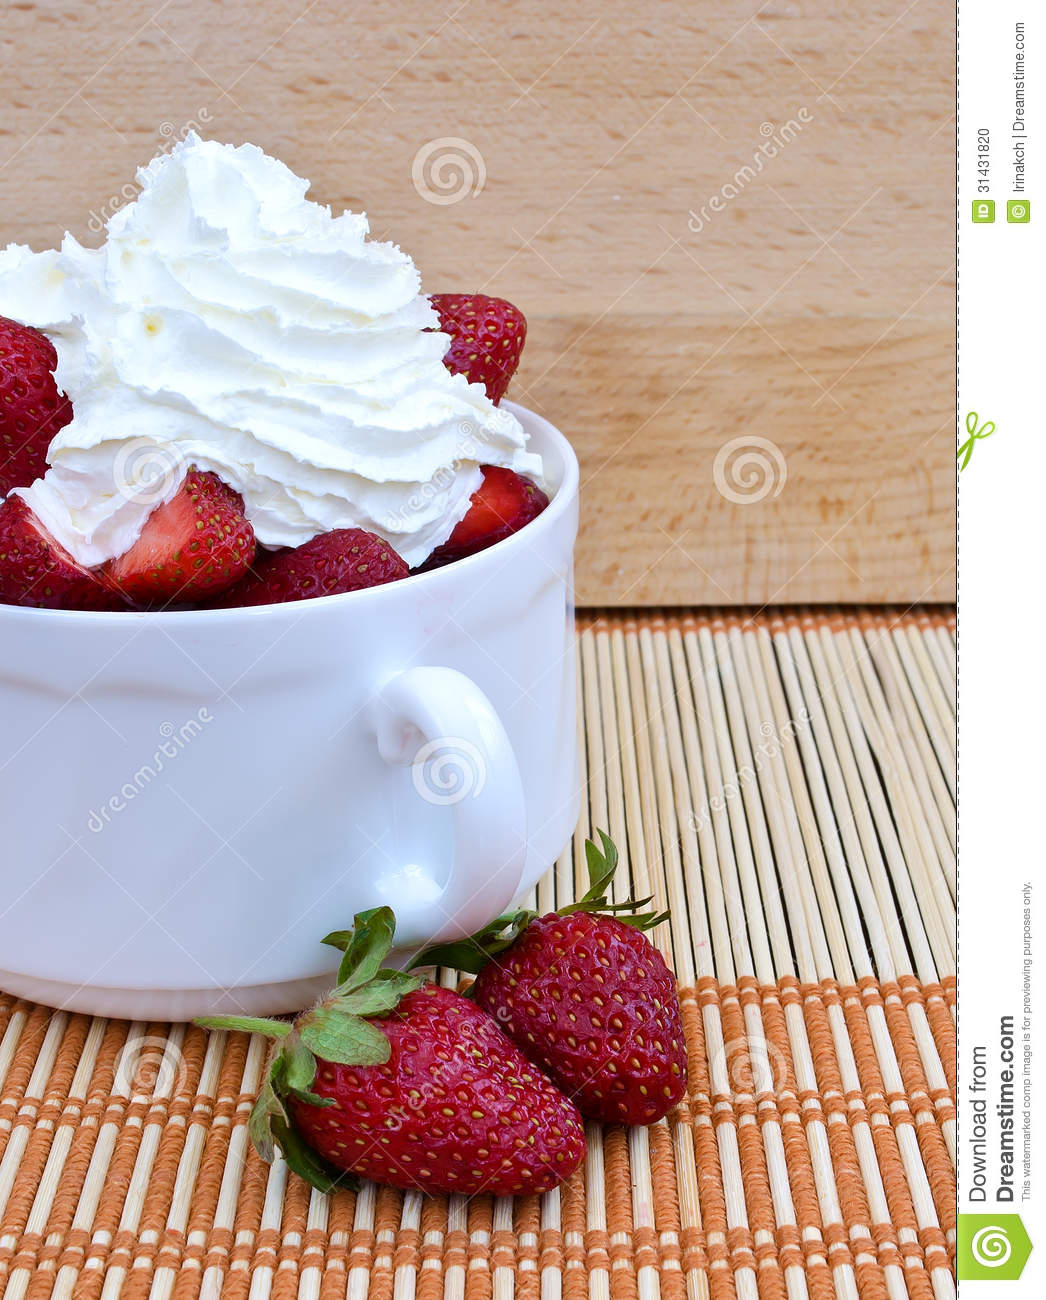 Strawberries And Whipped Cream Bowl Strawberries With Whip...